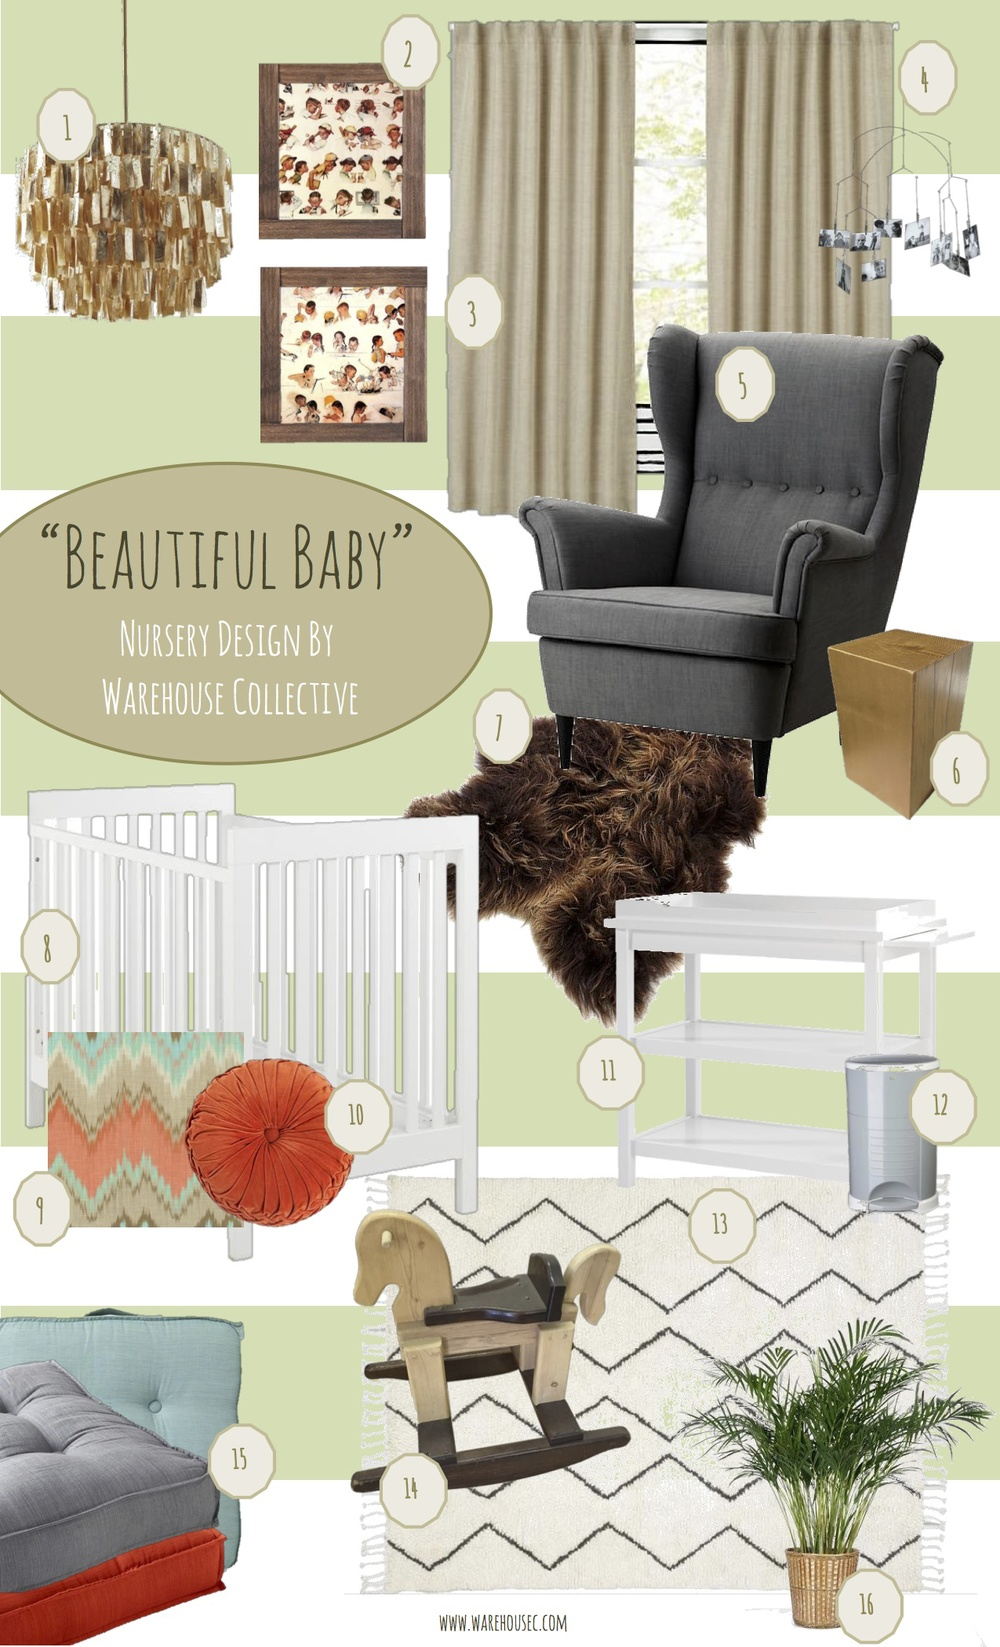 "The inspiration behind ""Beautiful Baby"" is a neutral nursery, utilizing vintage childhood accents, and a relaxing color scheme. Our client painted two walls and the ceiling with bold stripes in Behr Celery Bunch. With that as our base, we added 1. West Elm Round Capiz Chandelier $279 2. Client's Vintage Norman Rockwell ""Life of a Boy/Girl"" 3. Land of Nod Fresh Linen Curtains in Natural $49  4. All Modern Photo Mobile $19 5. Ikea Strandmon Wing Chair in Svanby Grey $279 (DIY to Rocking Chair) 6.Warehouse Collective Solid Wood Block Side Table $200 7. Land of Nod Just Fur You Baby Blanket $99 8. Land of Nod Elemental Crib $599 9. Ollie & Penny Ikat Organic Cotton Swaddle $29 10. Urban Outfitters Round Pintuck Pillow $34 11. Land of Nod Change It Up Changing Table $315 12. Diaper Dekor Kolor Plus Pail $46 13. West Elm Souk Wool Rug 3x5 $159 14. Client's Vintage Wooden Rocking Horse 15. World Market Khadi Tufted Floor Pillow $40 16. Ikea Potted Plant $15"